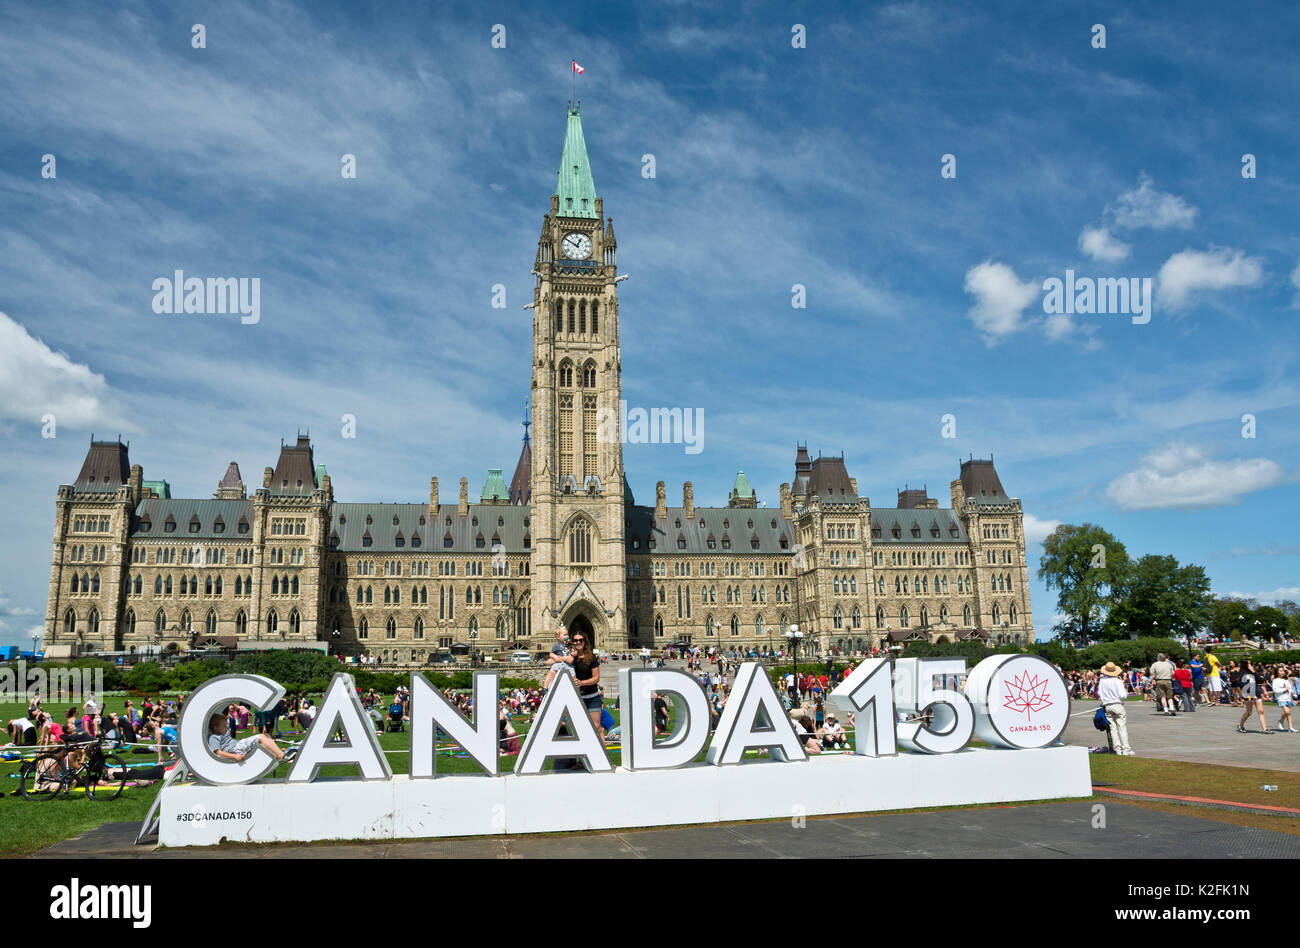 Canada 150 sign on Parliament Hill in Ottawa, Ontario.  Parliament buildings in the nation's capital. Stock Photo